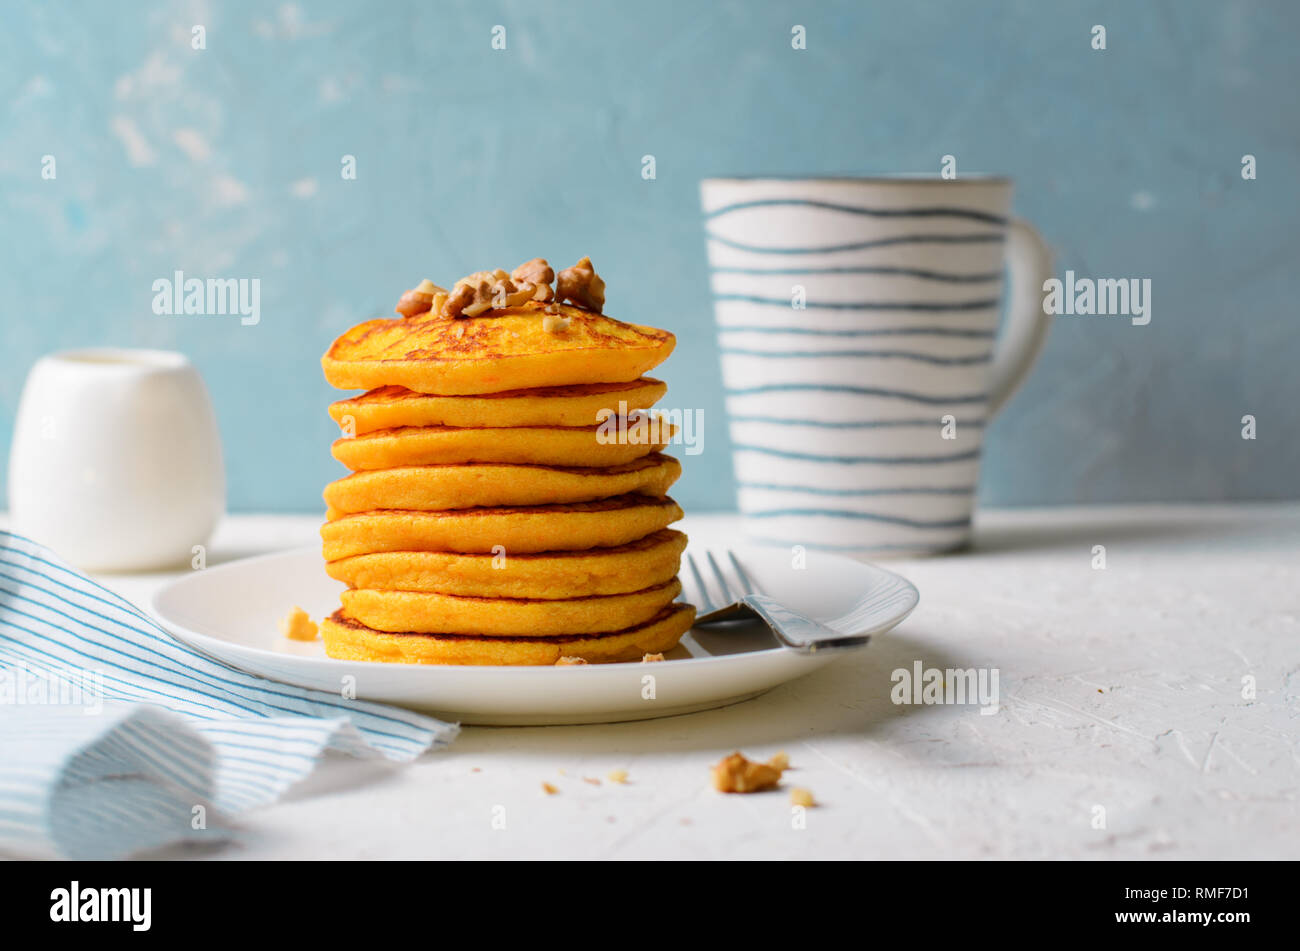 Pumpkin or Carrot Pancakes with Nuts, Stack of Homemade Pancakes on Bright Background Stock Photo